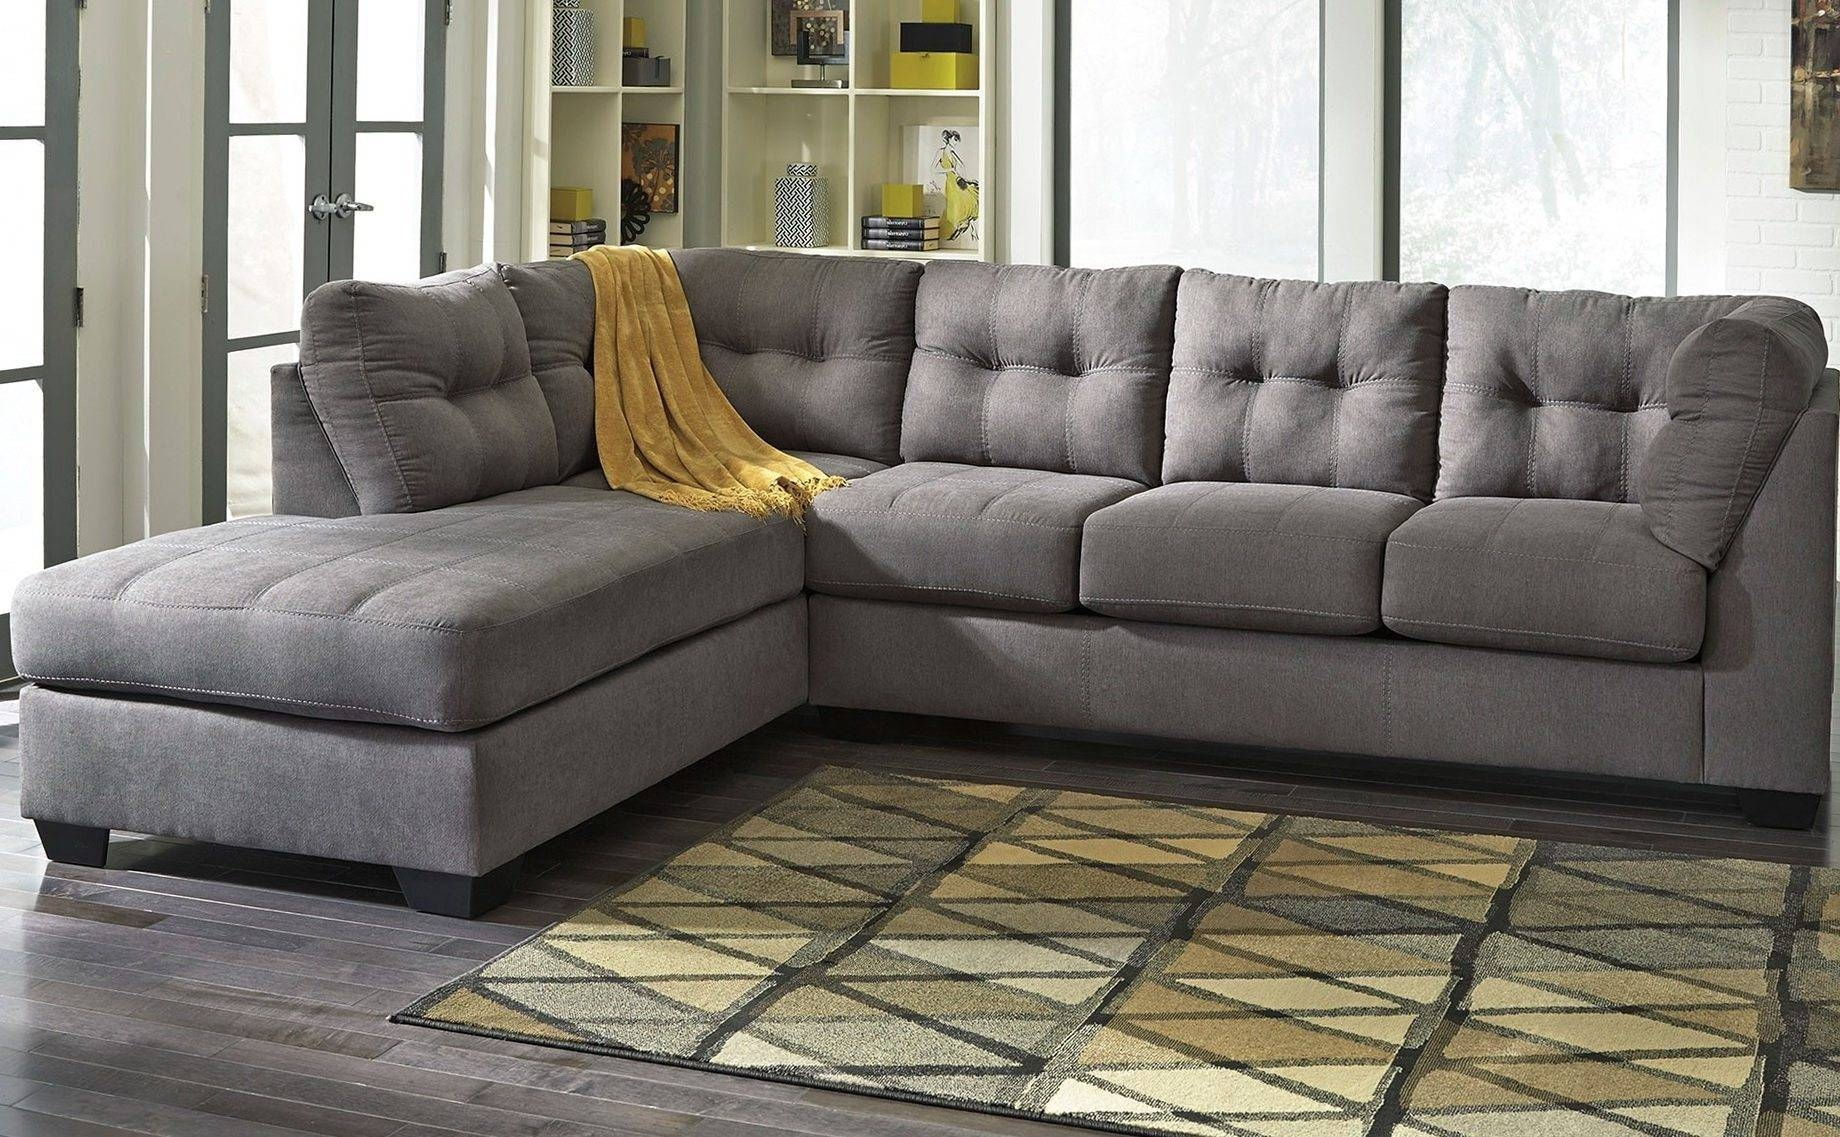 Living Room : Charcoal Gray Sectional Sofa With Chaise Lounge regarding Charcoal Gray Sectional Sofas (Image 11 of 15)